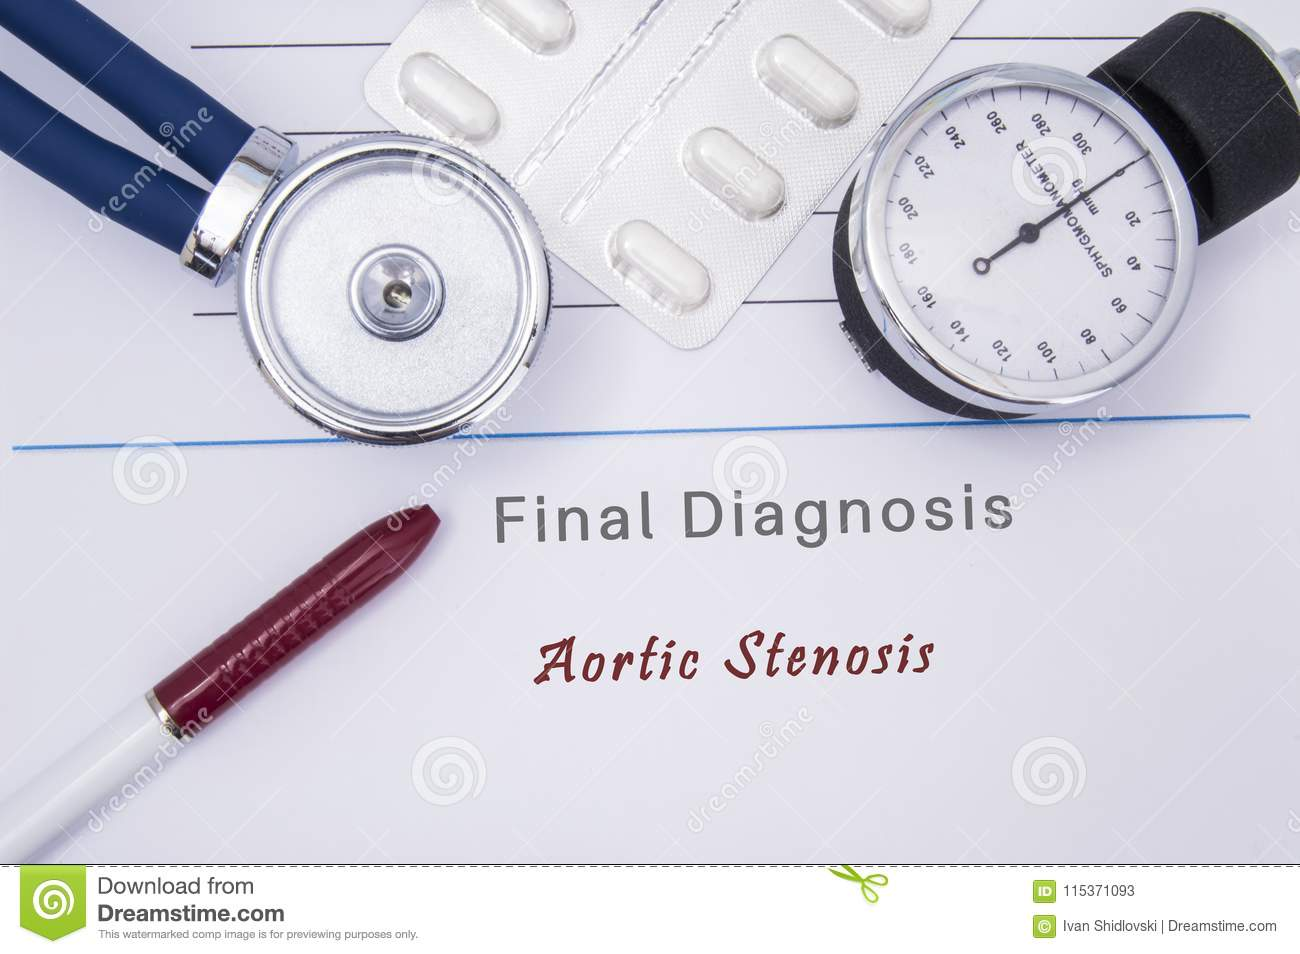 Paper medical form with the diagnosis of Aortic Stenosis on which lie the stethoscope, blood pressure monitor, white tablets or pi